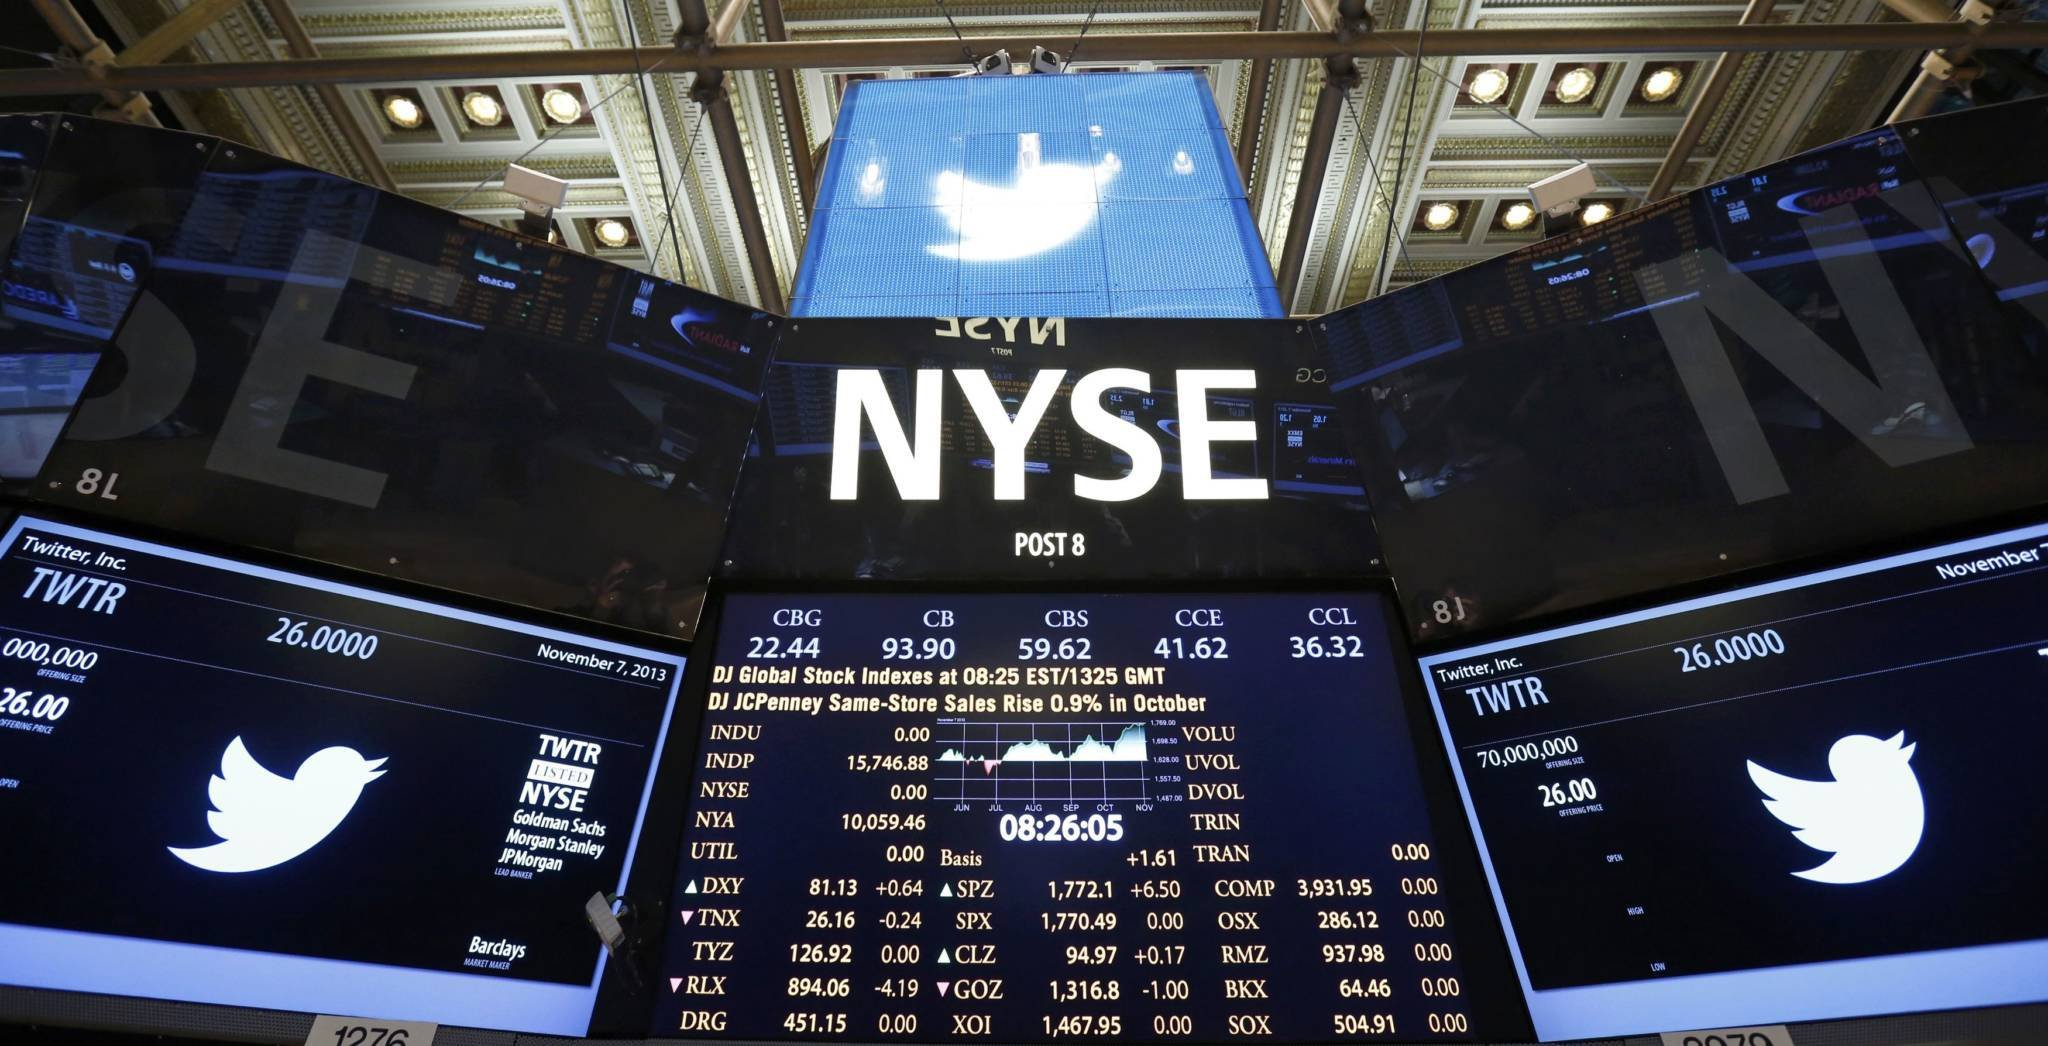 The Twitter logo is seen on the floor before the company's IPO at the New York Stock Exchange in New York, November 7, 2013. REUTERS/Lucas Jackson (UNITED STATES - Tags: BUSINESS) ORG XMIT: TOR206